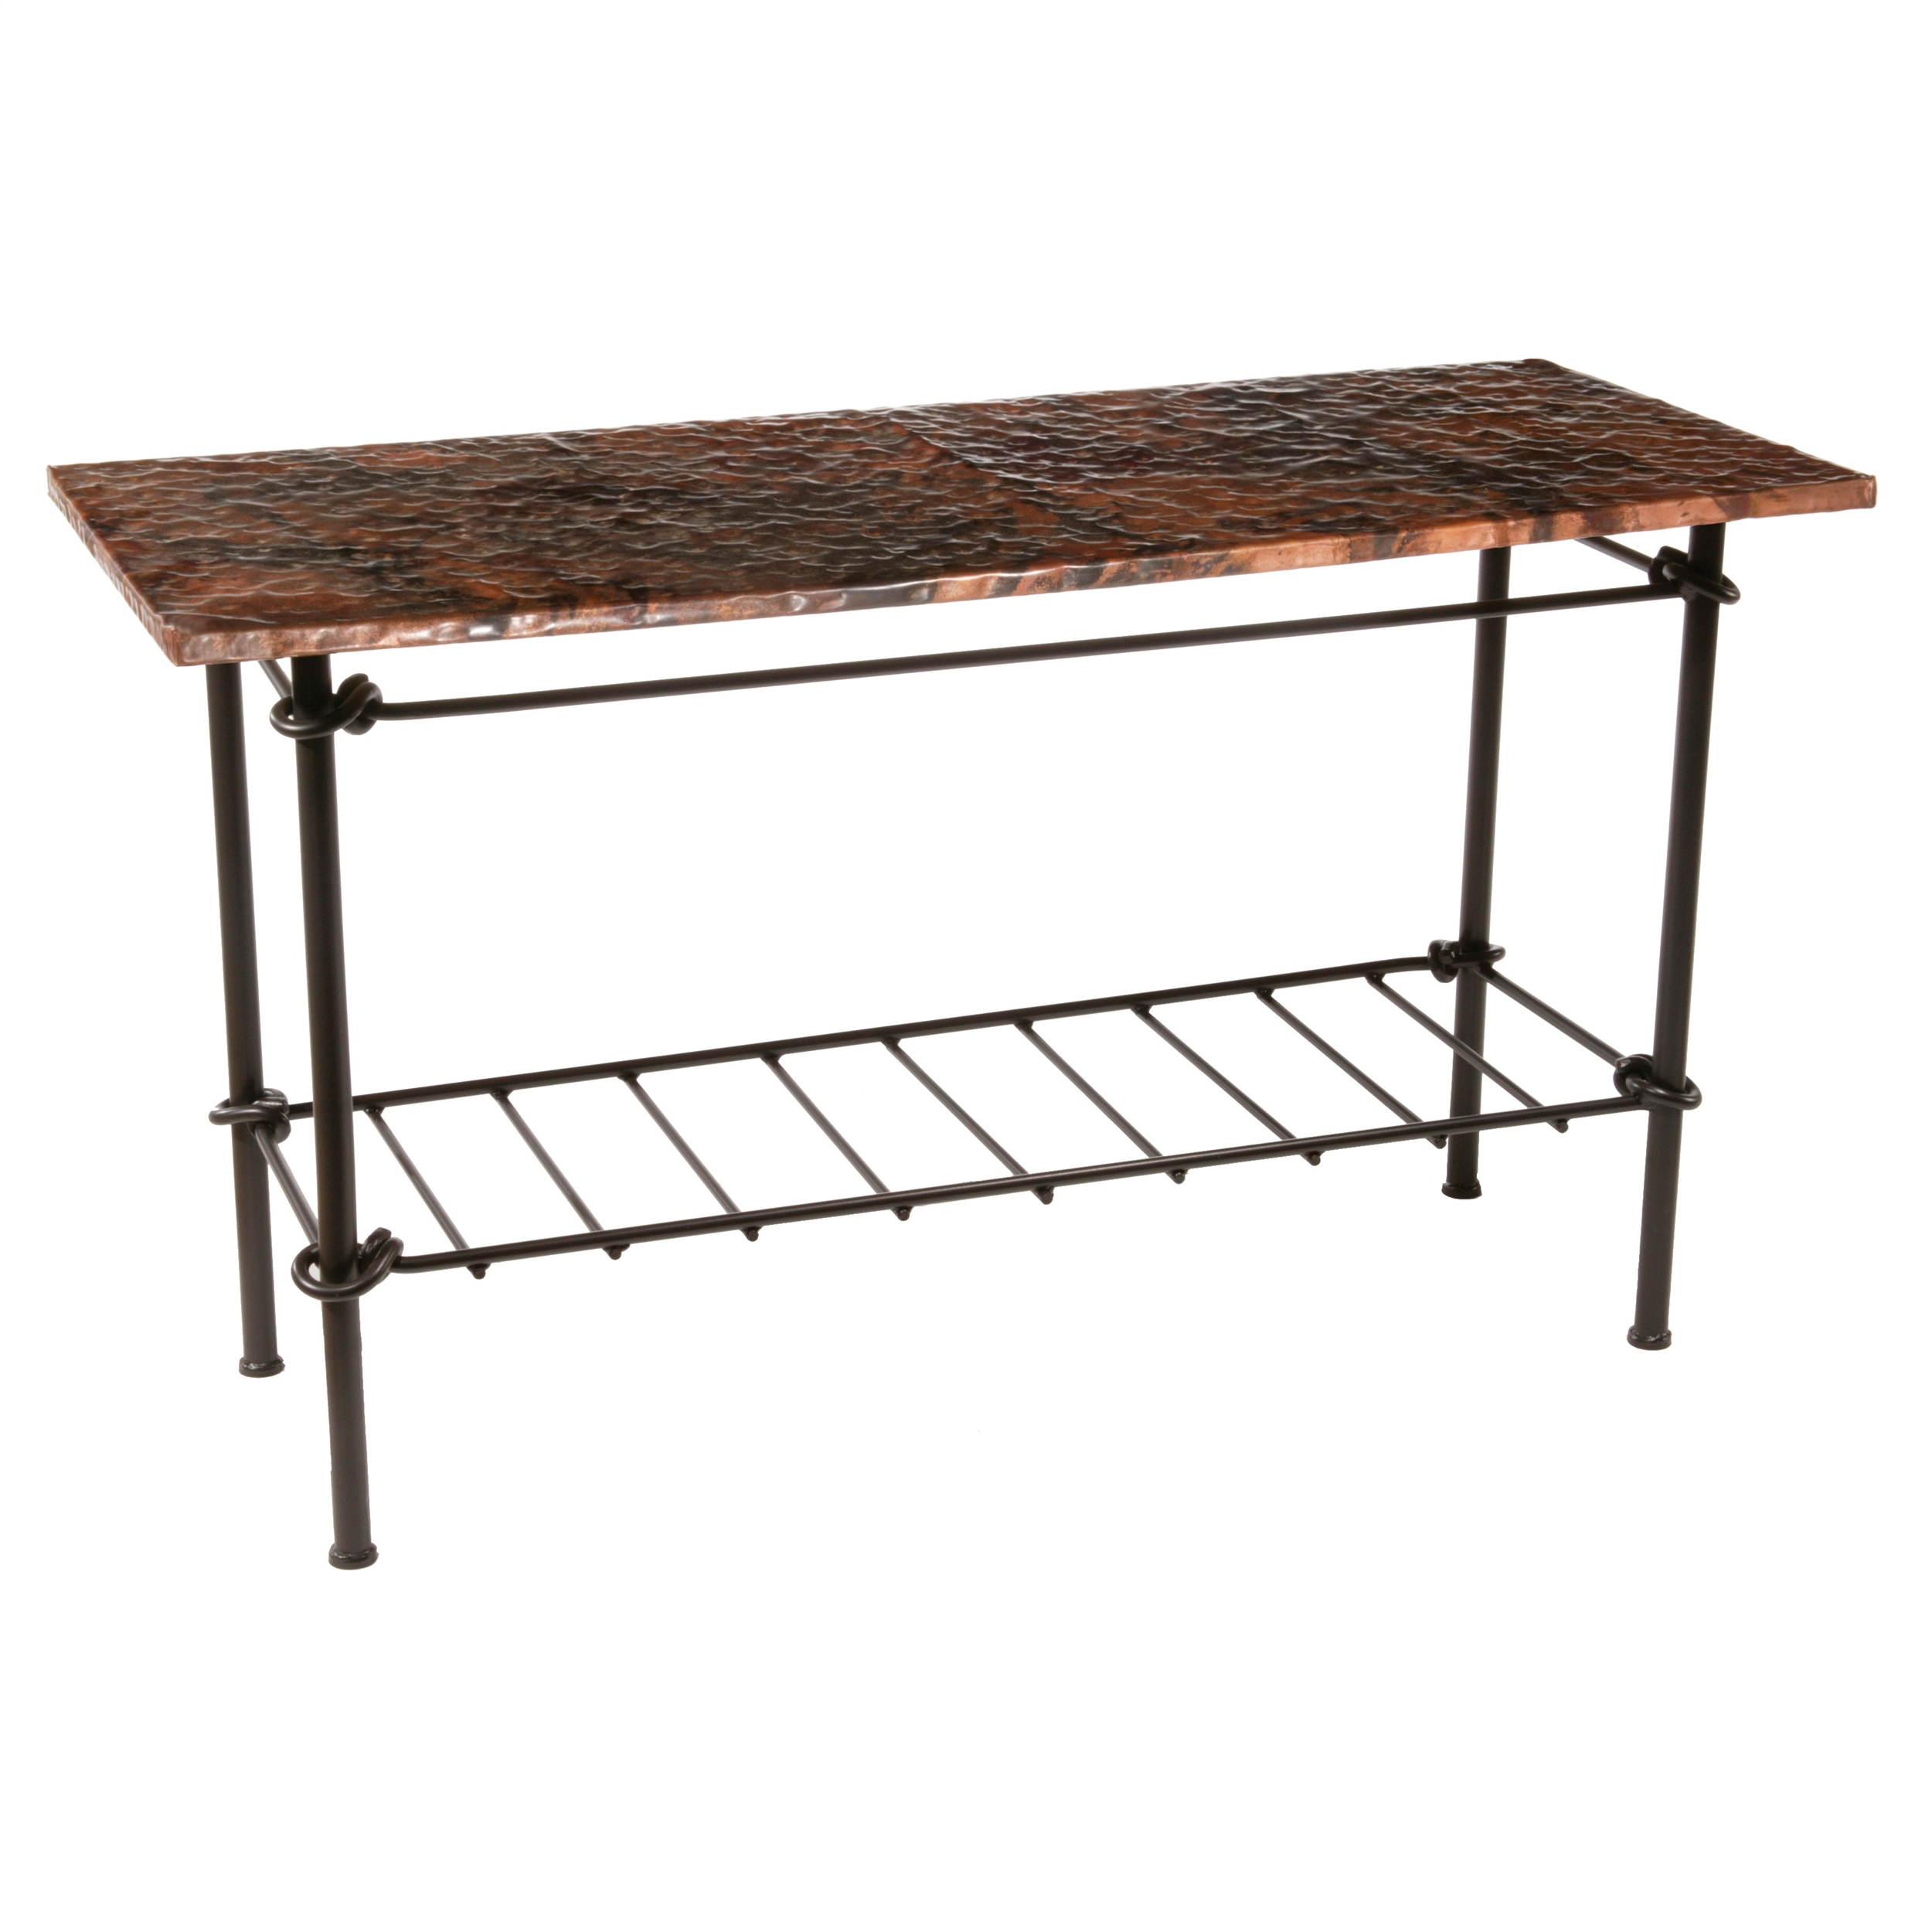 Knot console table 901140 Metal console table